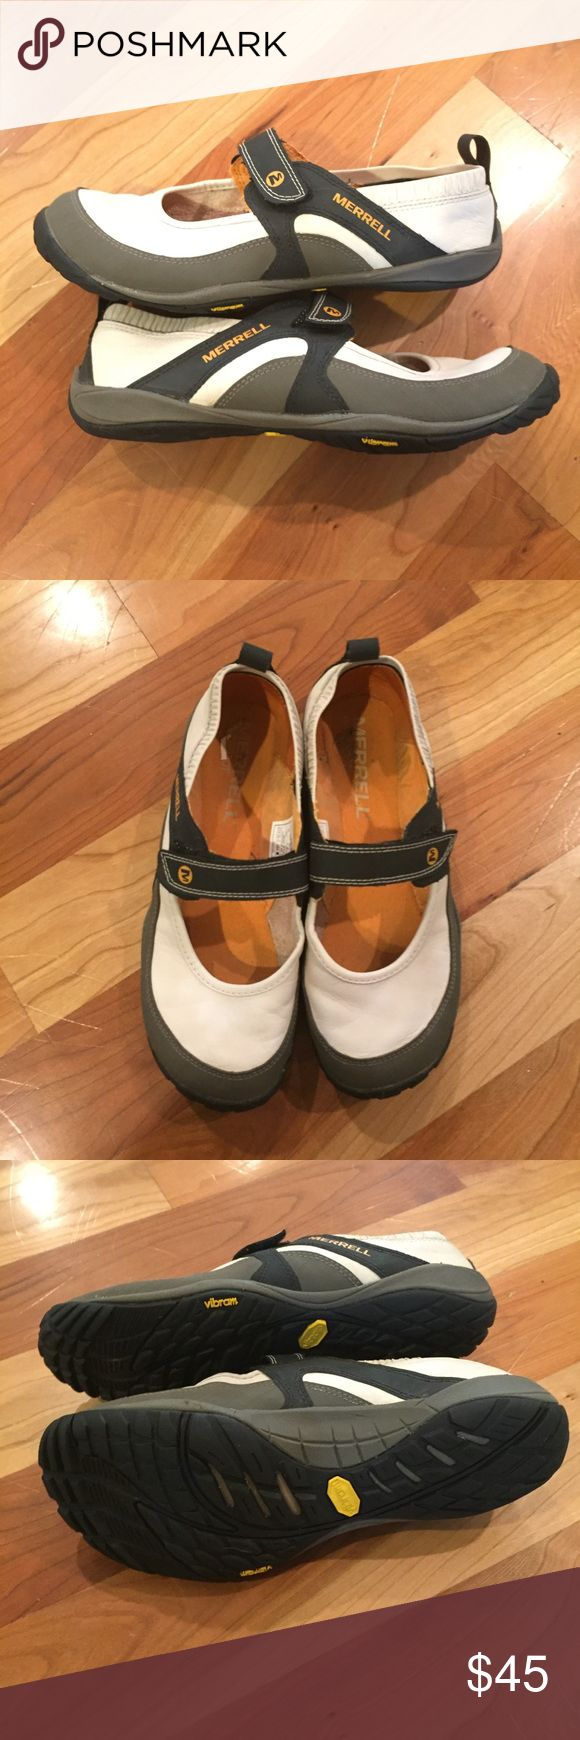 Leather Merrill Shoes like new! These shoes are in excellent condition and so comfortable. Feel free to ask me any questions you have! Merrell Shoes